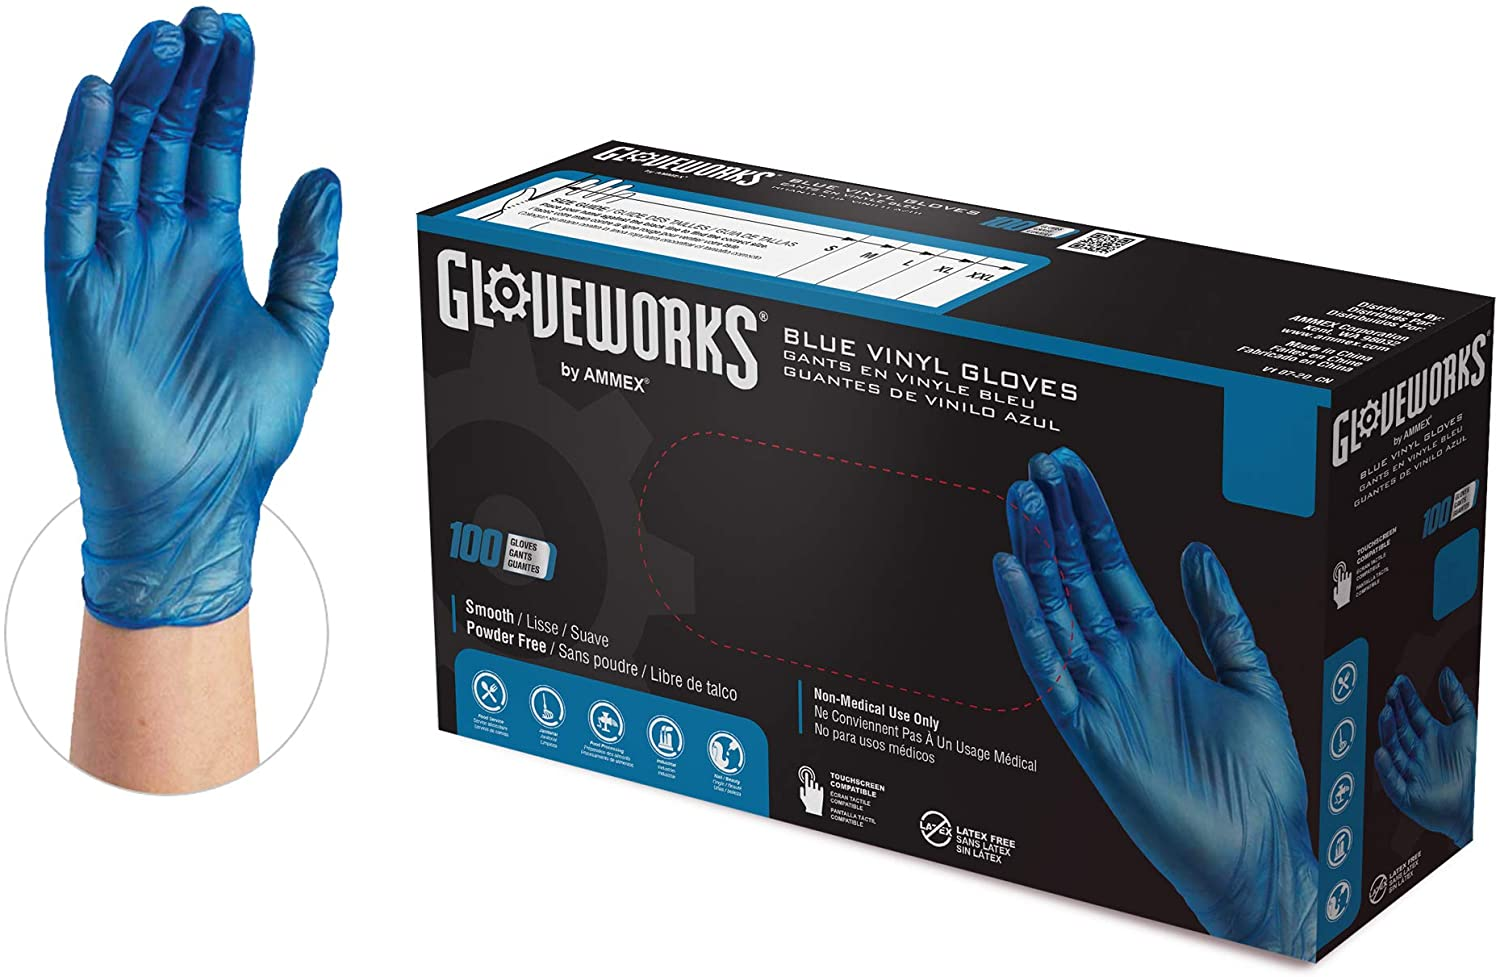 GLOVEPLUS GLOVEPLUS Industrial Blue VinylGloves, Box of 100, 4 mil, Size Medium, Latex Free, Powder Free, Food Safe, Disposable, Non-Sterile, IVBPF44100-BX